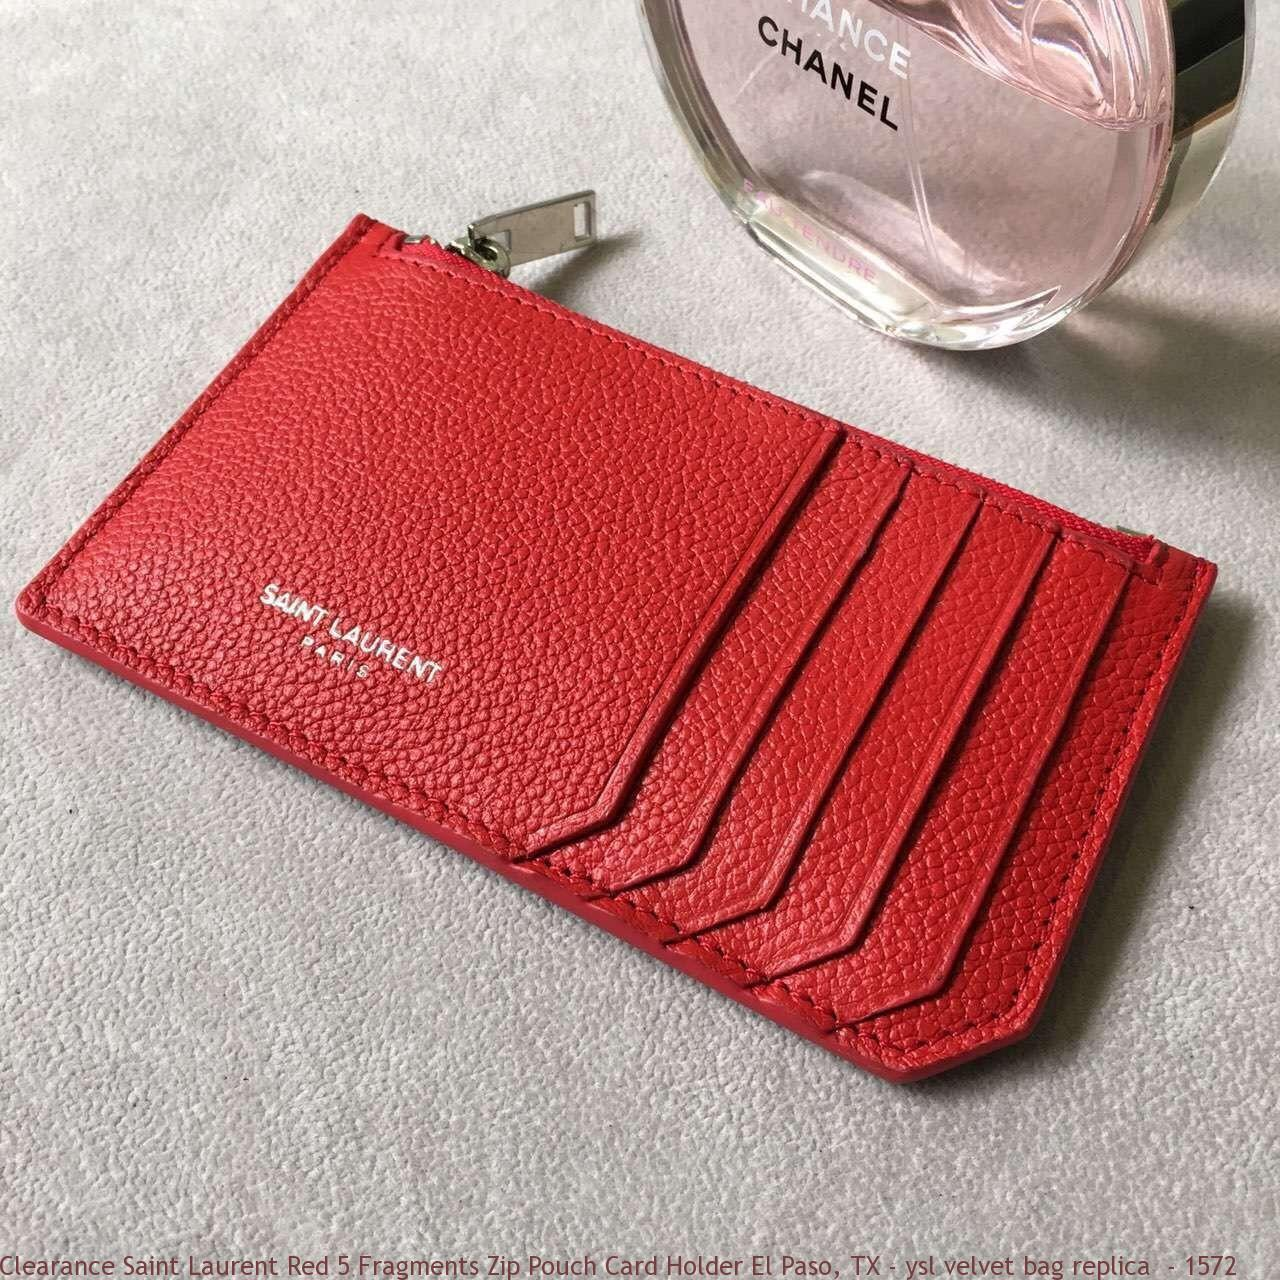 Clearance Saint Laurent Red 5 Fragments Zip Pouch Card